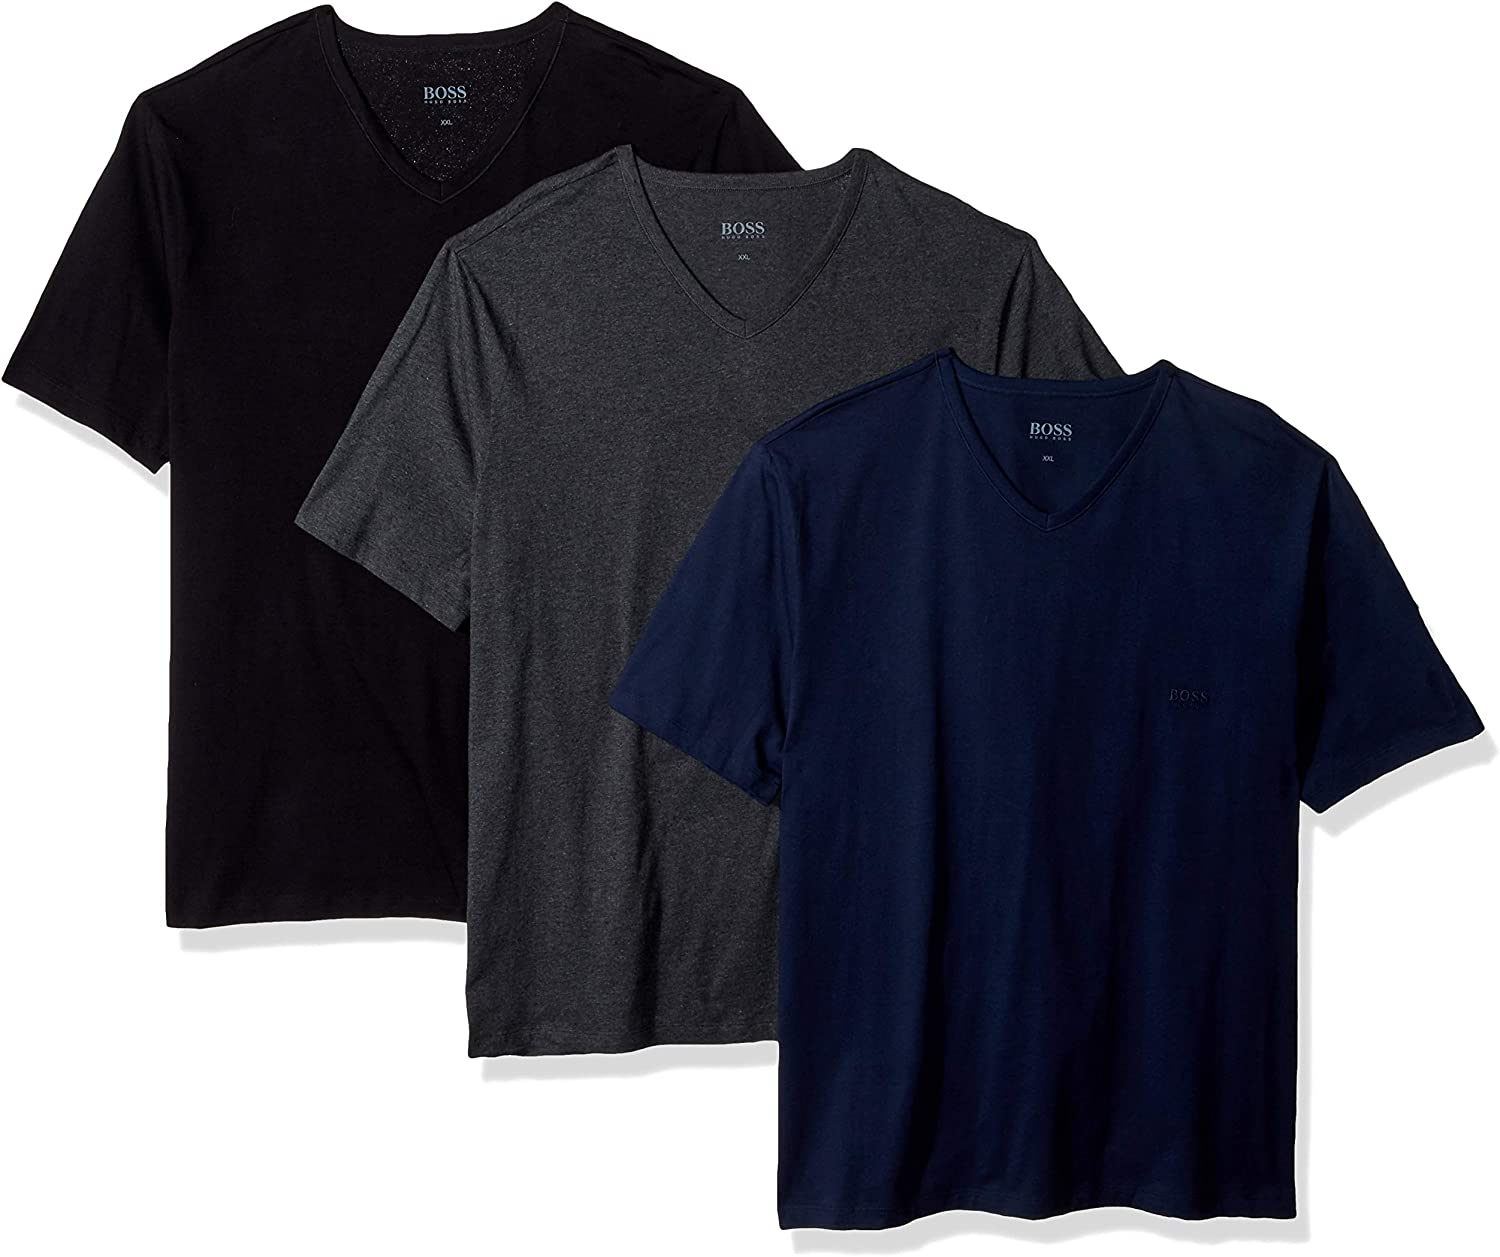 Hugo Boss Mens 3-Pack V-Neck Regular Fit Short Sleeve T-Shirt